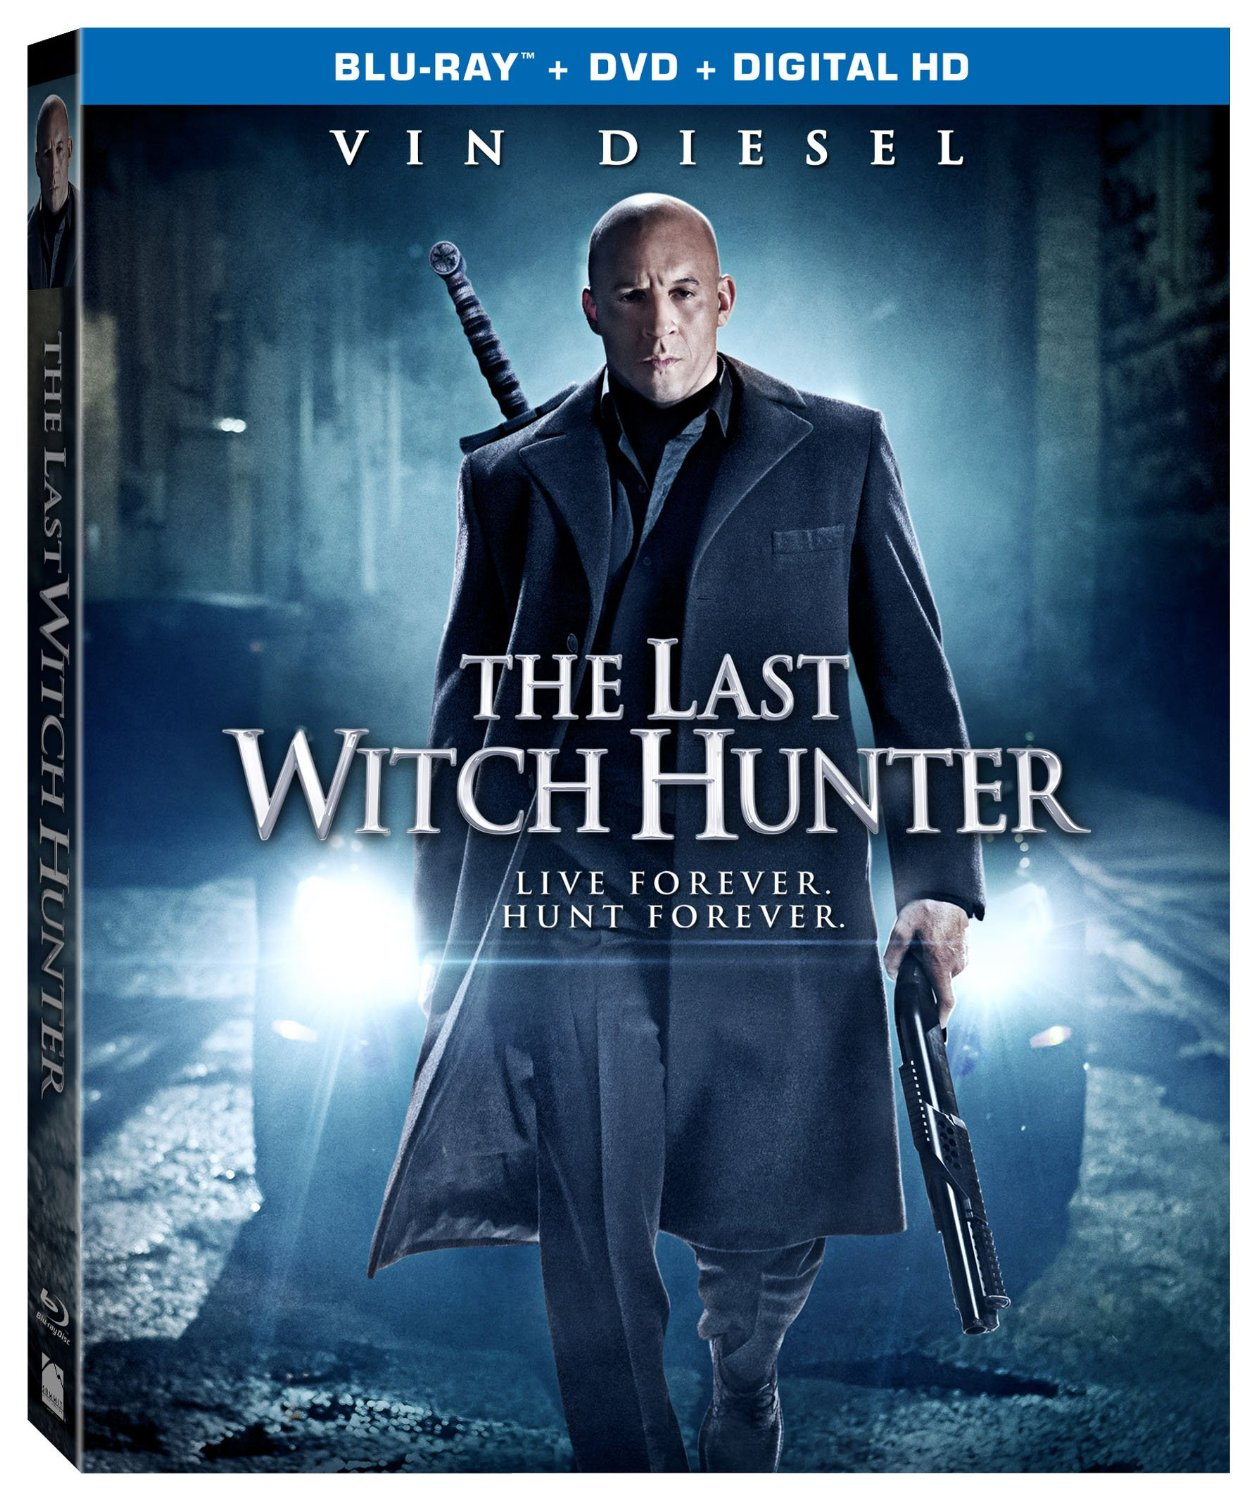 The Last Witch Hunter [Movie] - The Last Witch Hunter